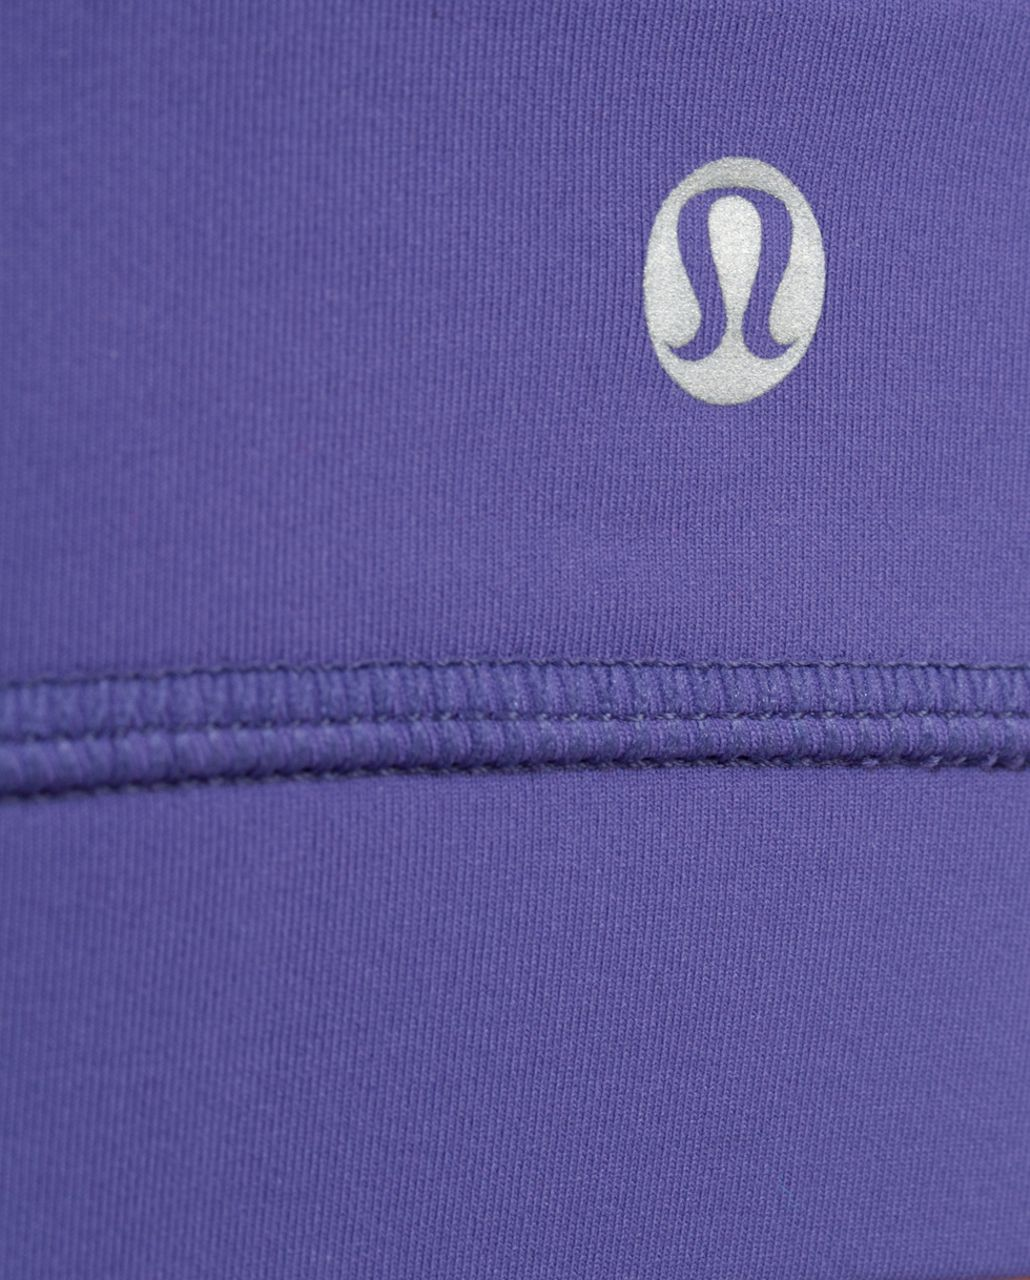 Lululemon Shape Me Bra - Royalty